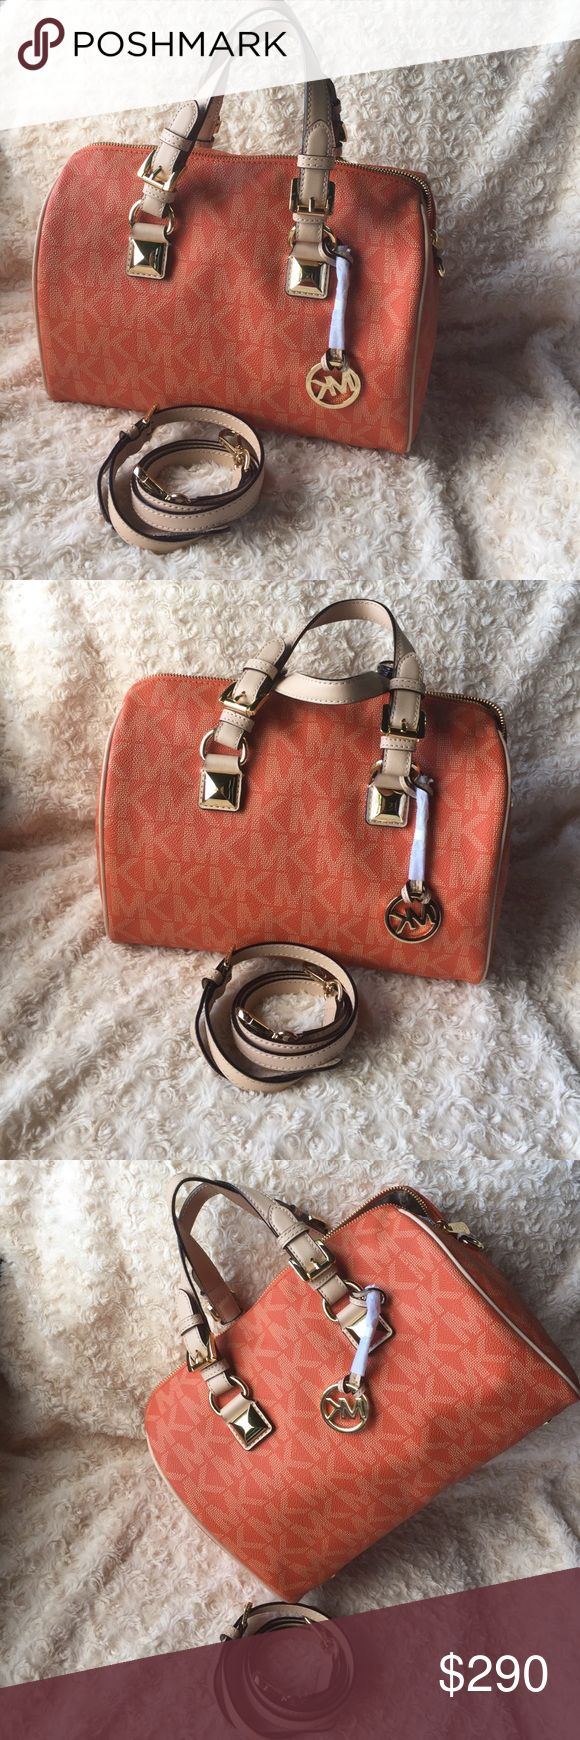 Authentic Michael Kors Womens Satchel Handbag 💯 Authentic MK, Brand New with tag and Never used. Reasonable offer are welcome! Michael Kors Bags Satchels